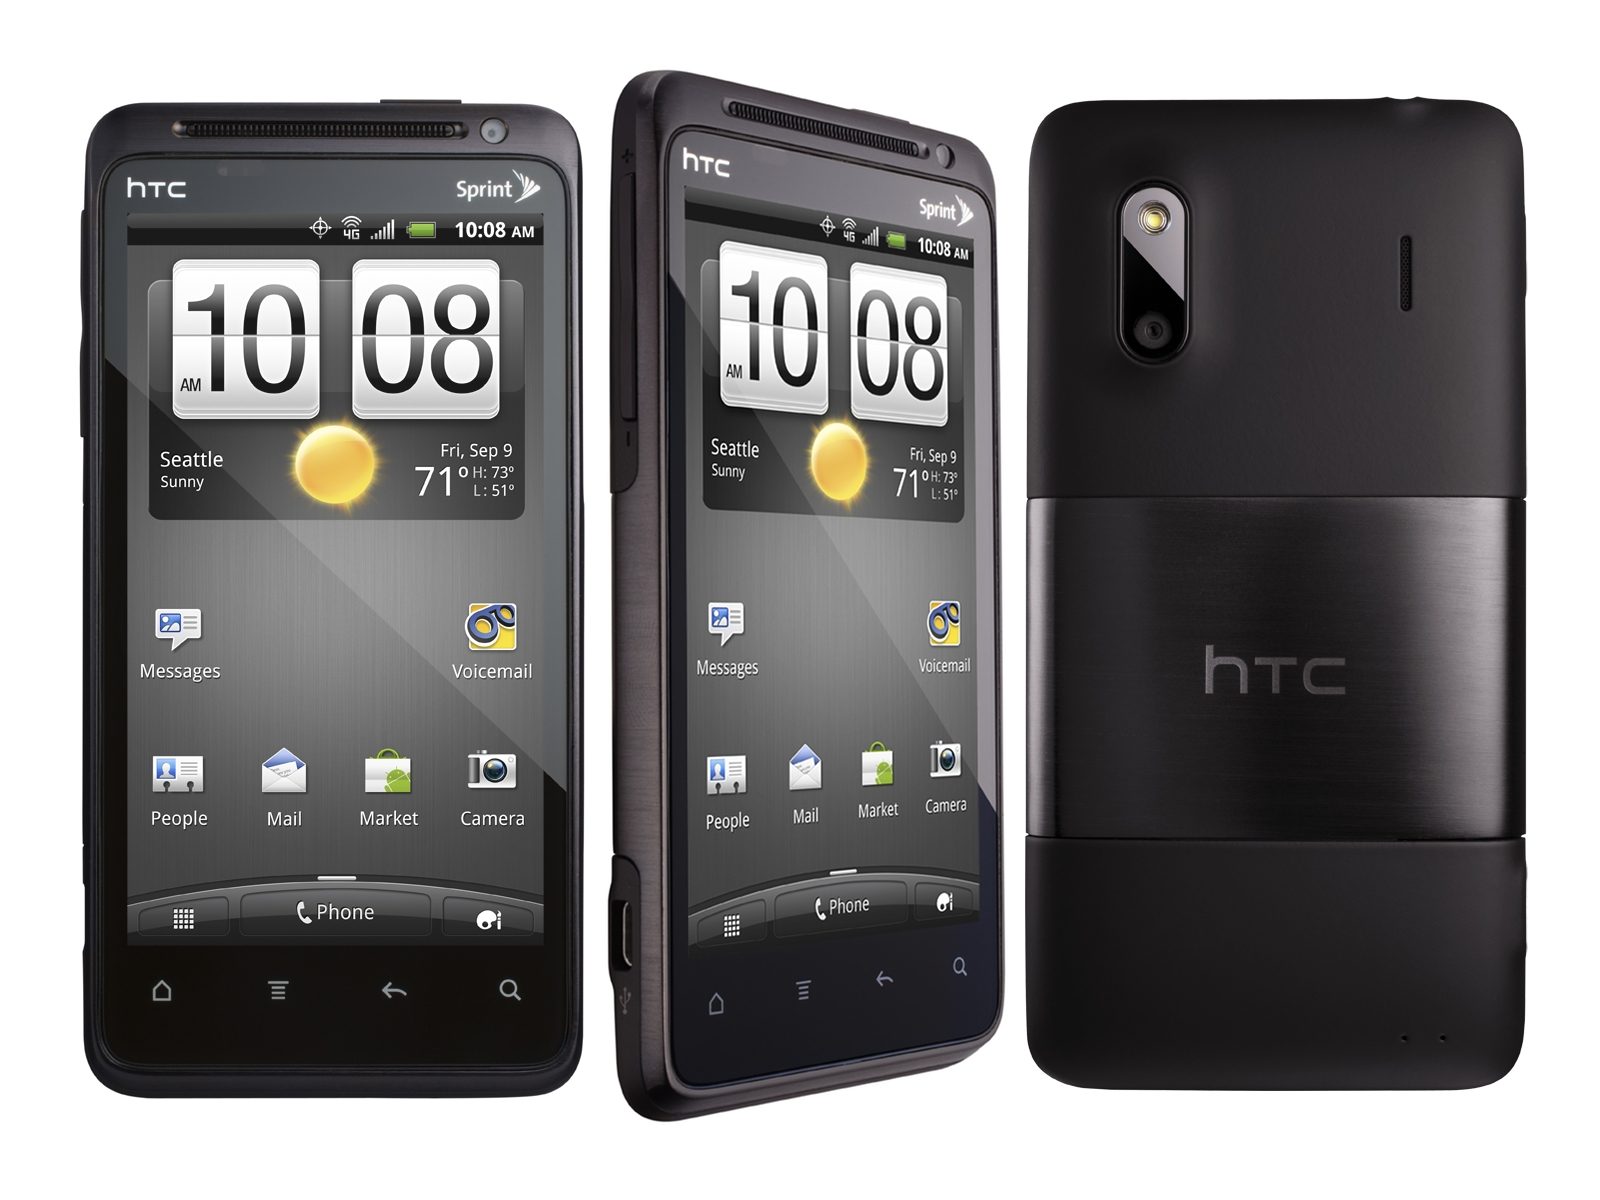 Camera Boost Mobile Android Phones For Sale htc evo design 4g wimax android smart phone boost mobile good mobile